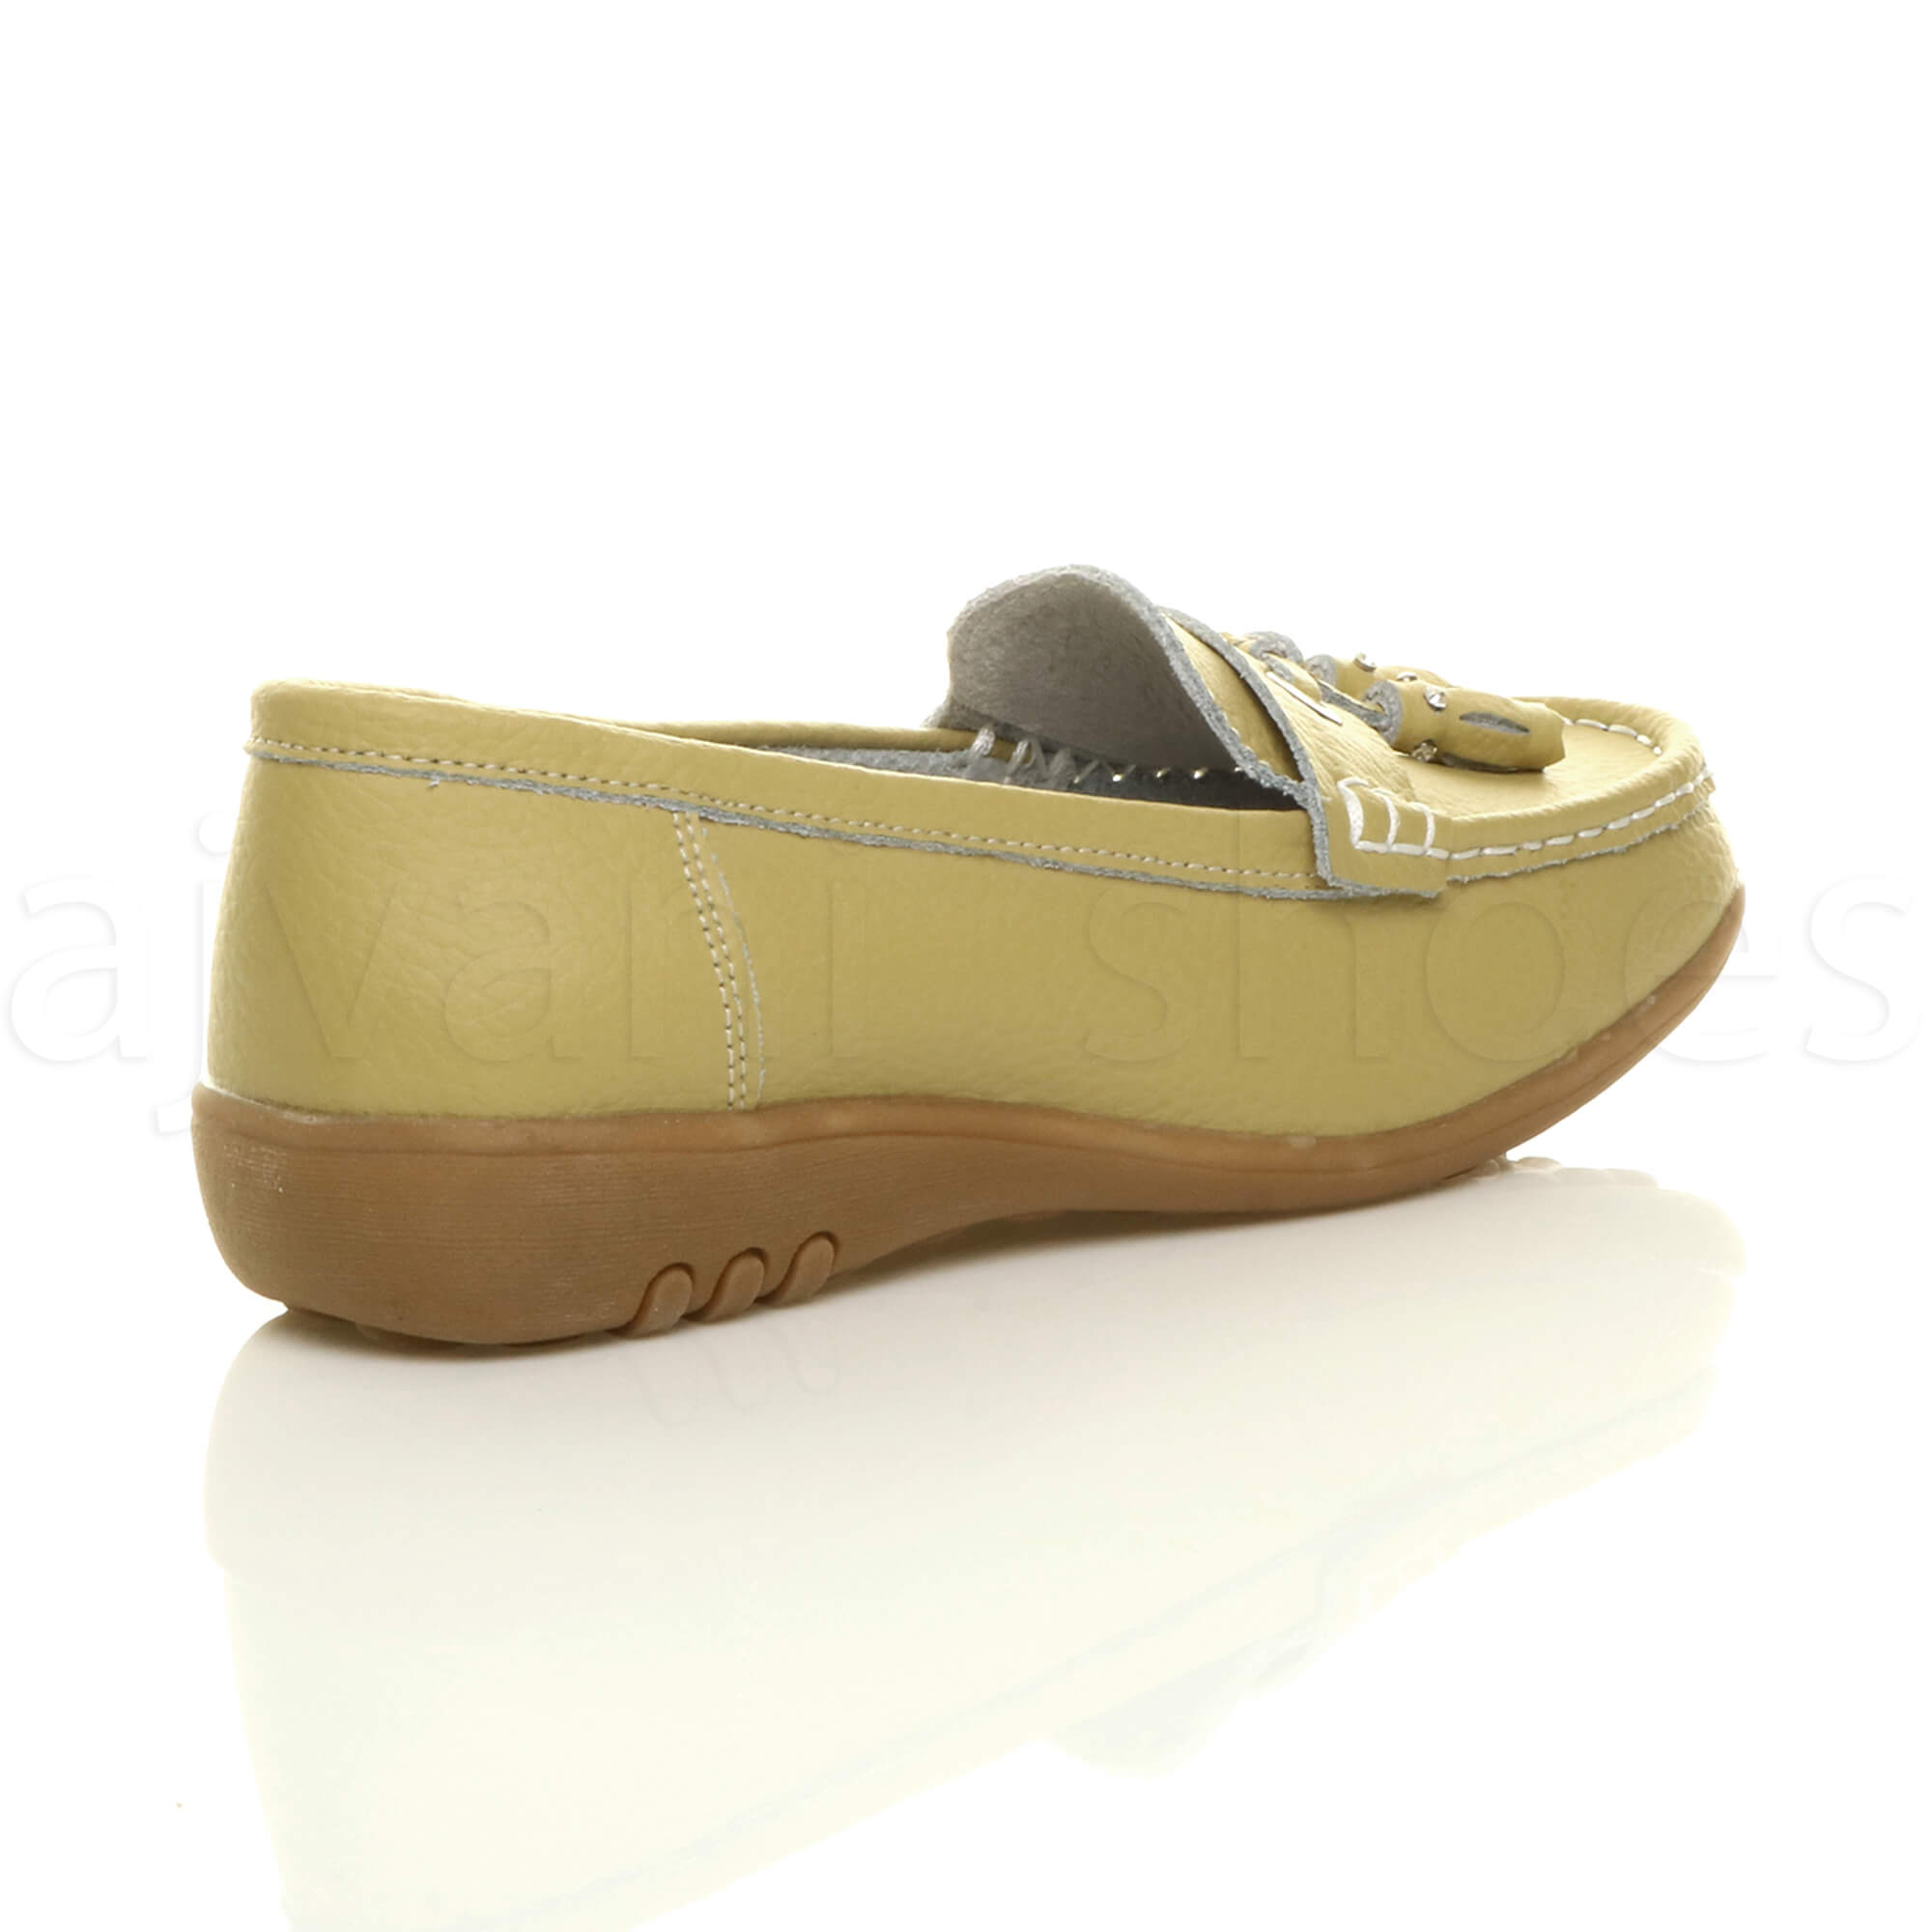 WOMENS-LADIES-LOW-HEEL-WEDGE-LEATHER-TASSEL-LOAFERS-COMFORT-MOCCASINS-SHOES-SIZE thumbnail 37